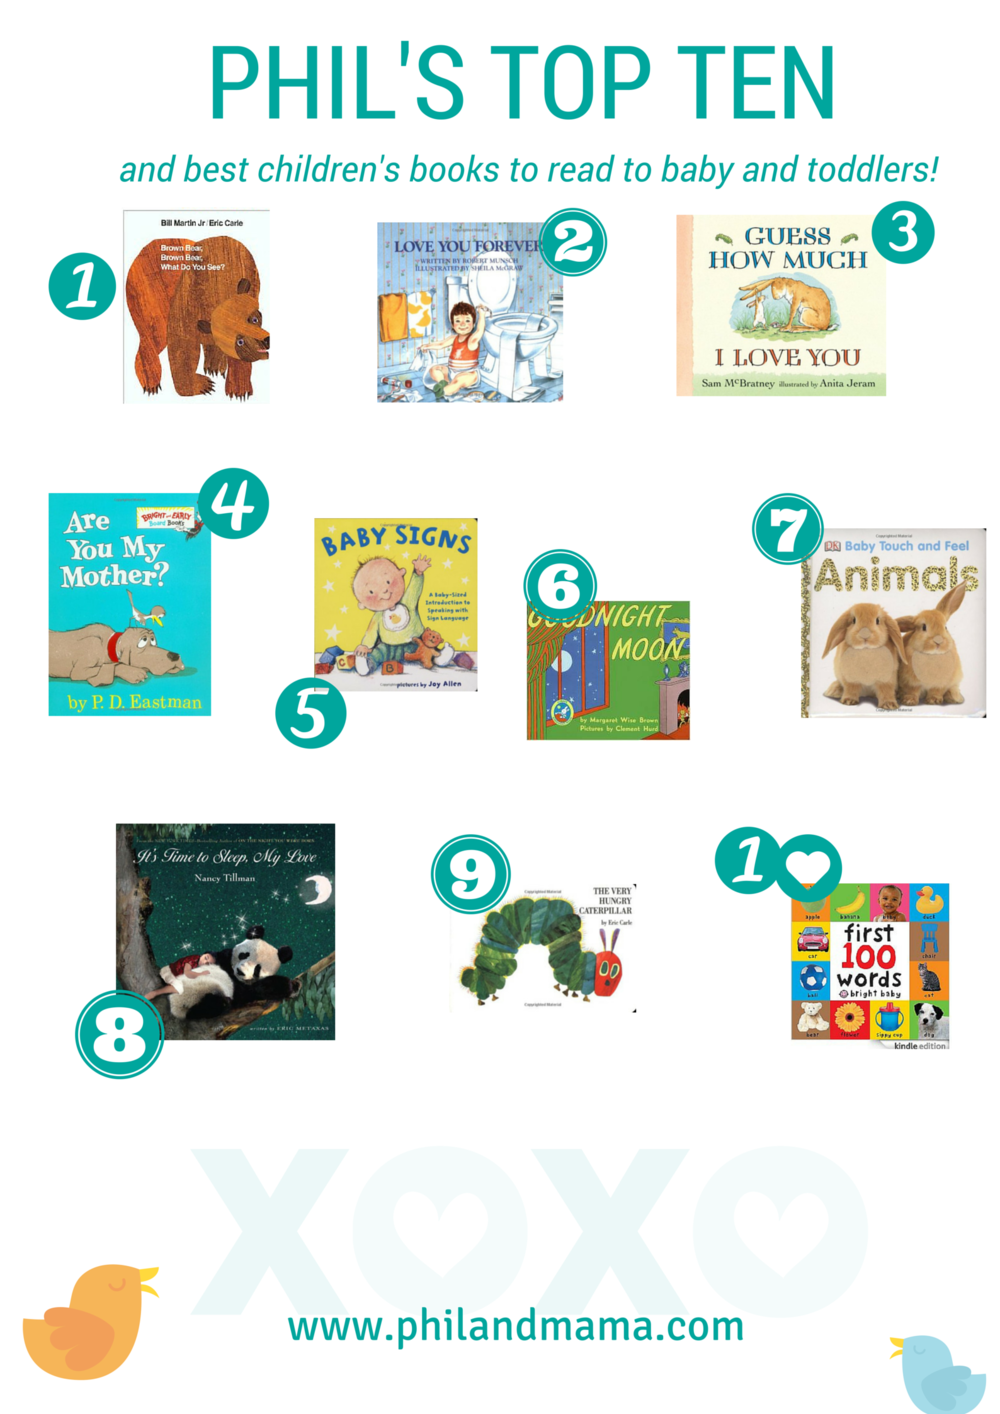 Phil's Top Ten Baby and Children's Books for bedtime or anytime reading